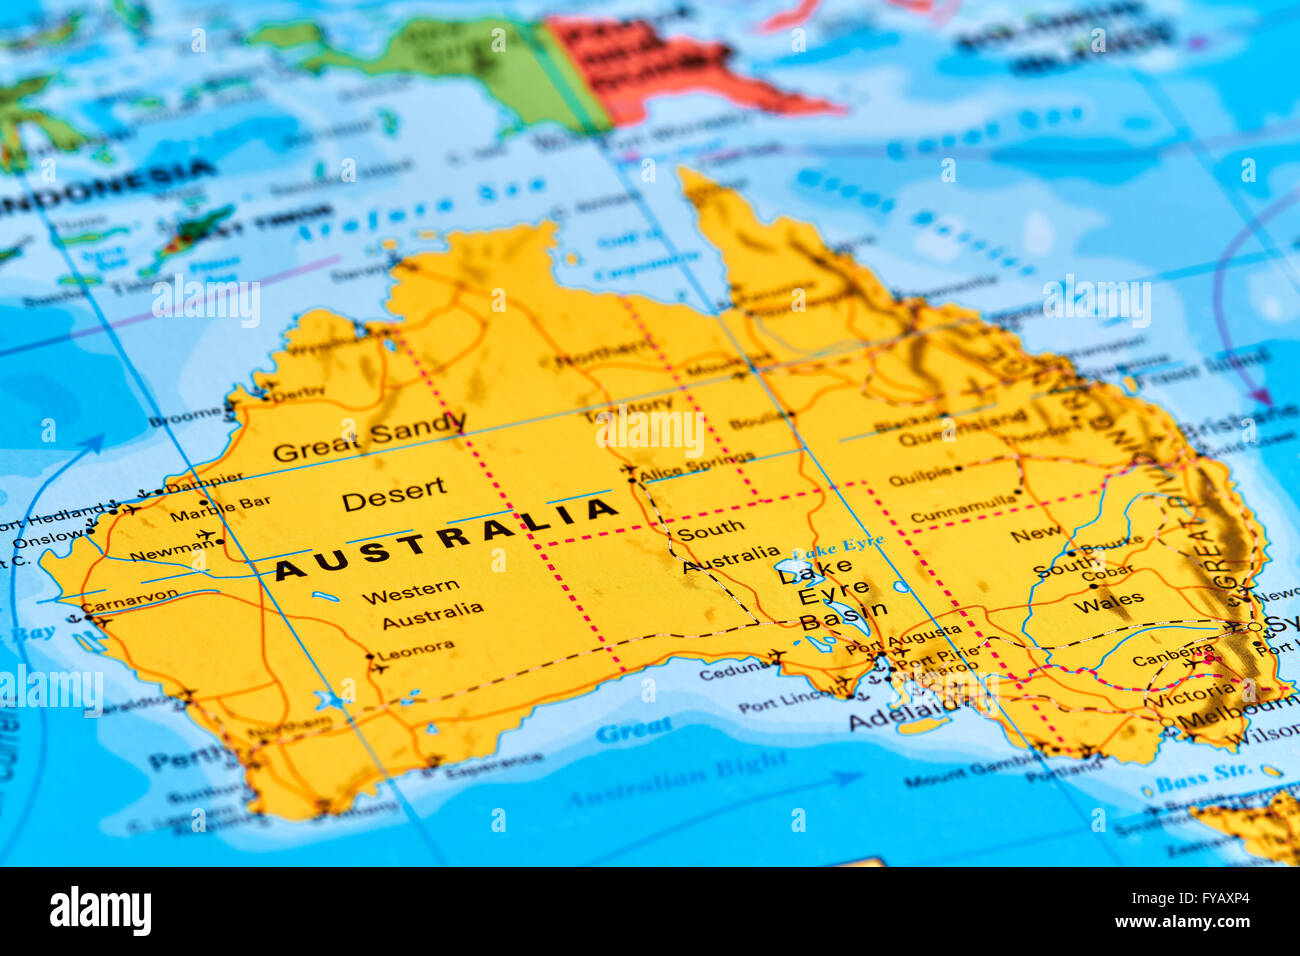 Australia Continent and Country on the World Map Stock Photo ... on europe map, australia hemisphere map, australia language, australia earth map, australia calendar 2015, australia town map, australia church map, australia business map, australia and oceania physical, australia flag, australia usa map, australia continental map, australia culture map, new zealand map, australia on the map, australia opera house map, australia map printable, devil's marbles australia map, australia character map, australia slot canyons,